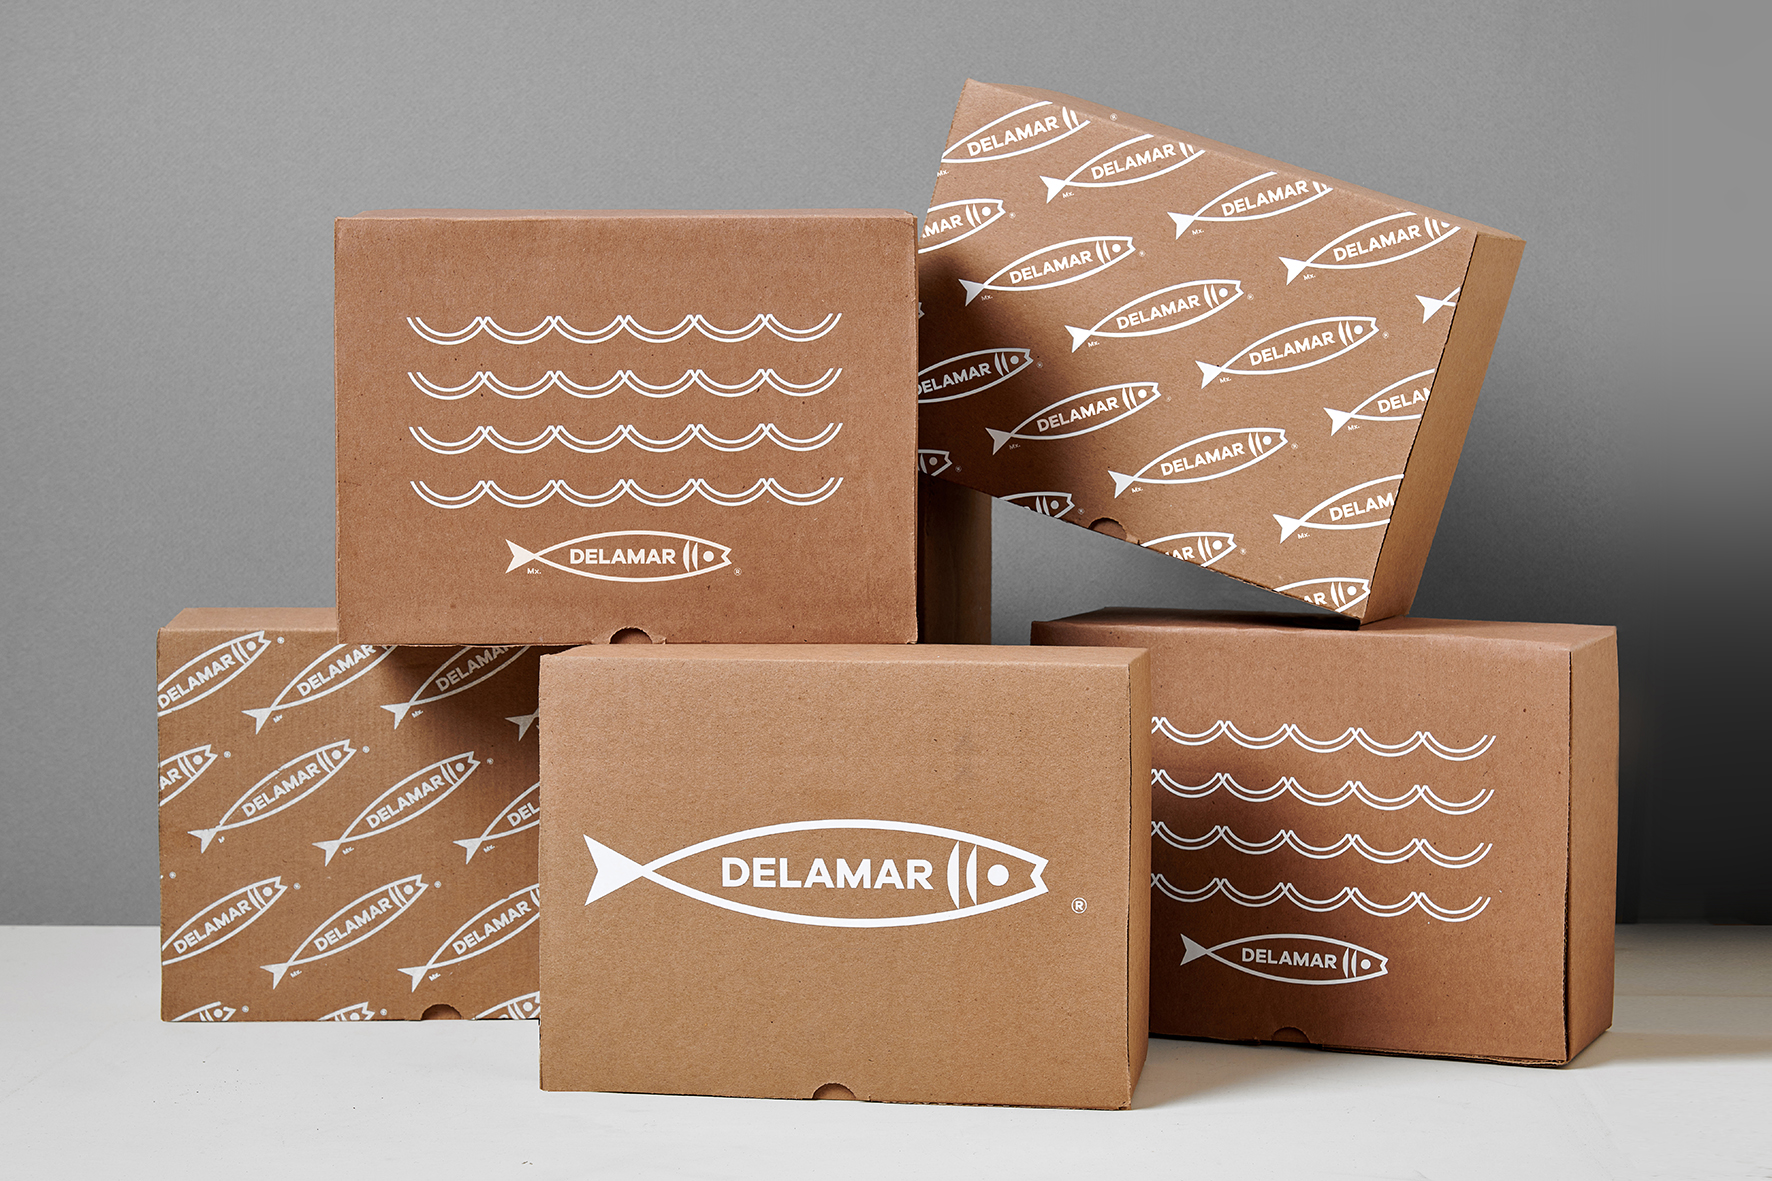 Delamar Brand Identity and Creation that Works Across all Touch Points